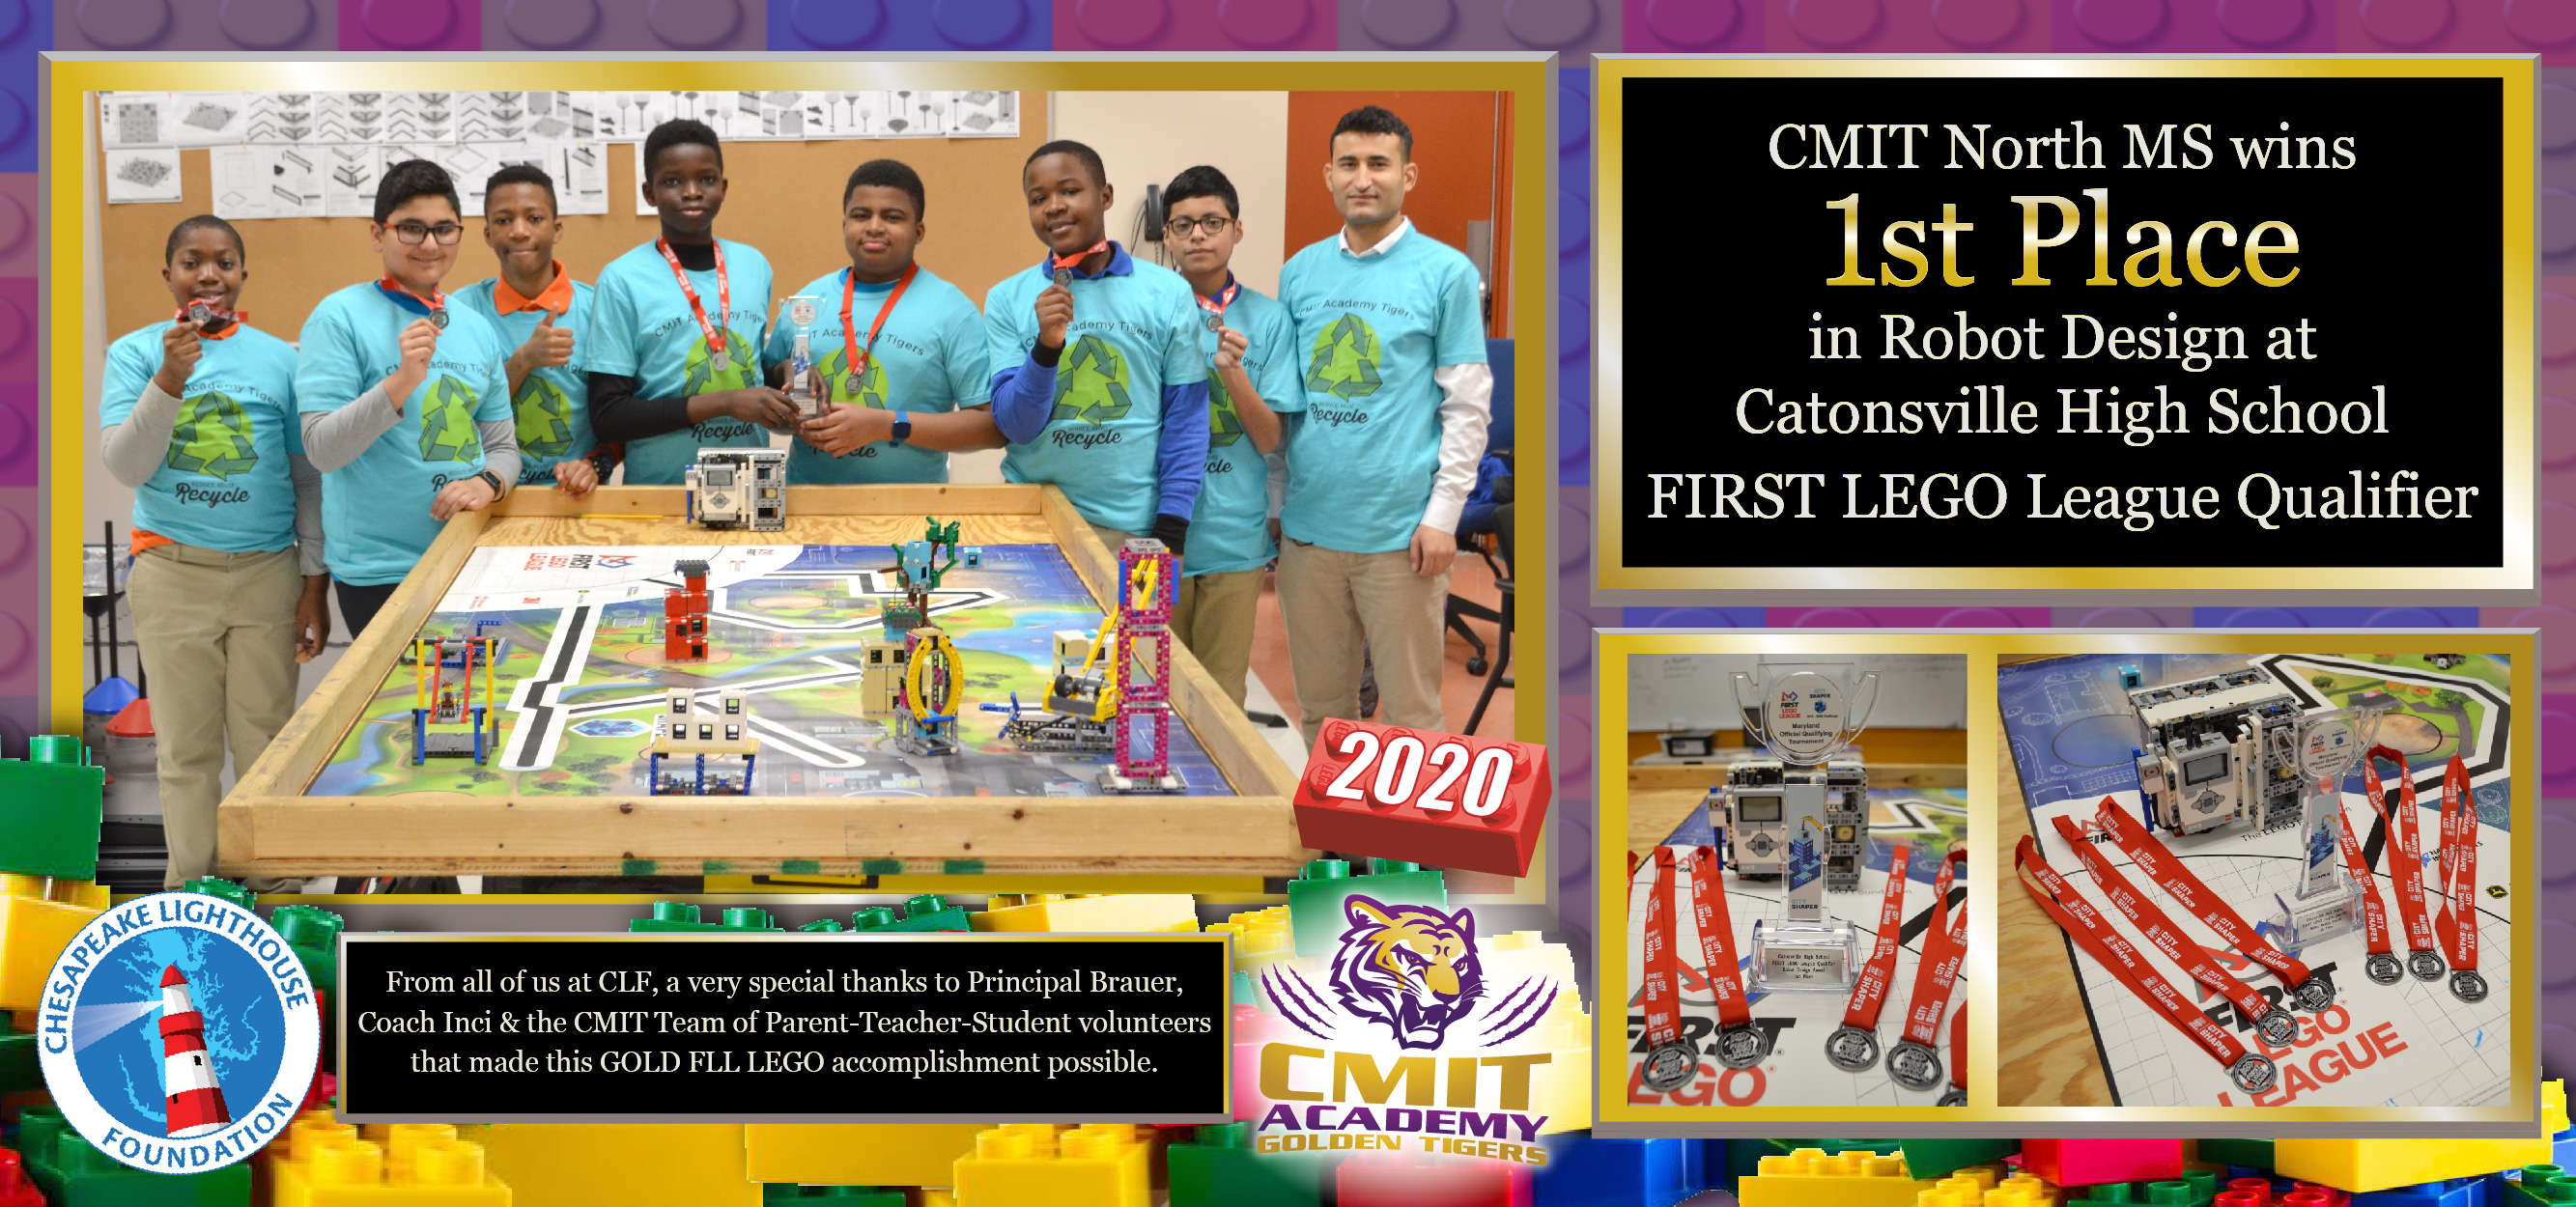 CMIT North MS Wins 1st Place at Robot Design